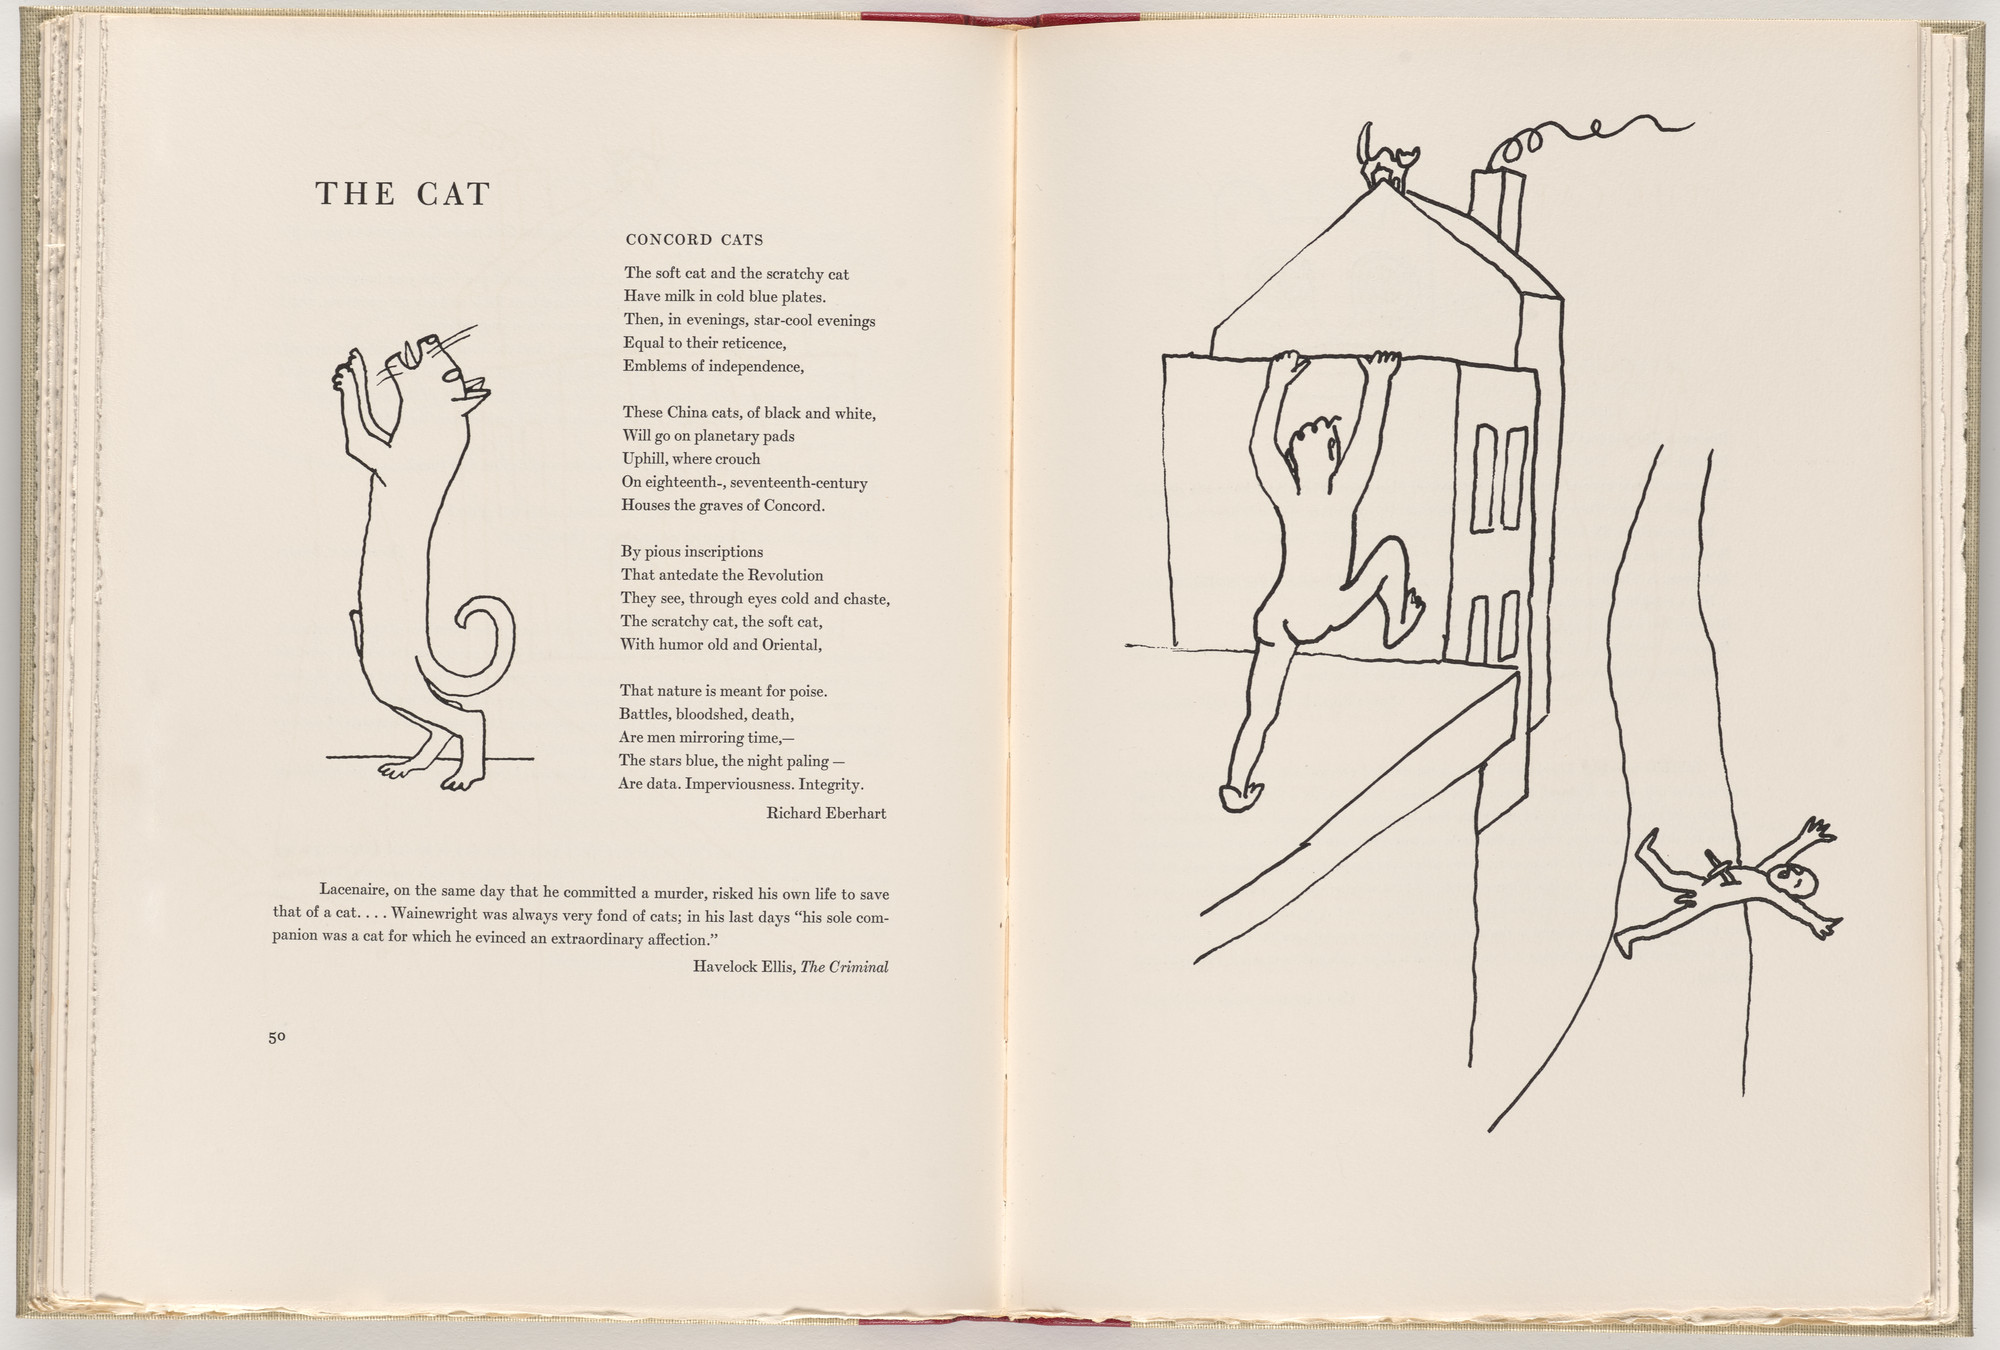 Alexander Calder. In-text plate (page 50) from A Bestiary. 1955